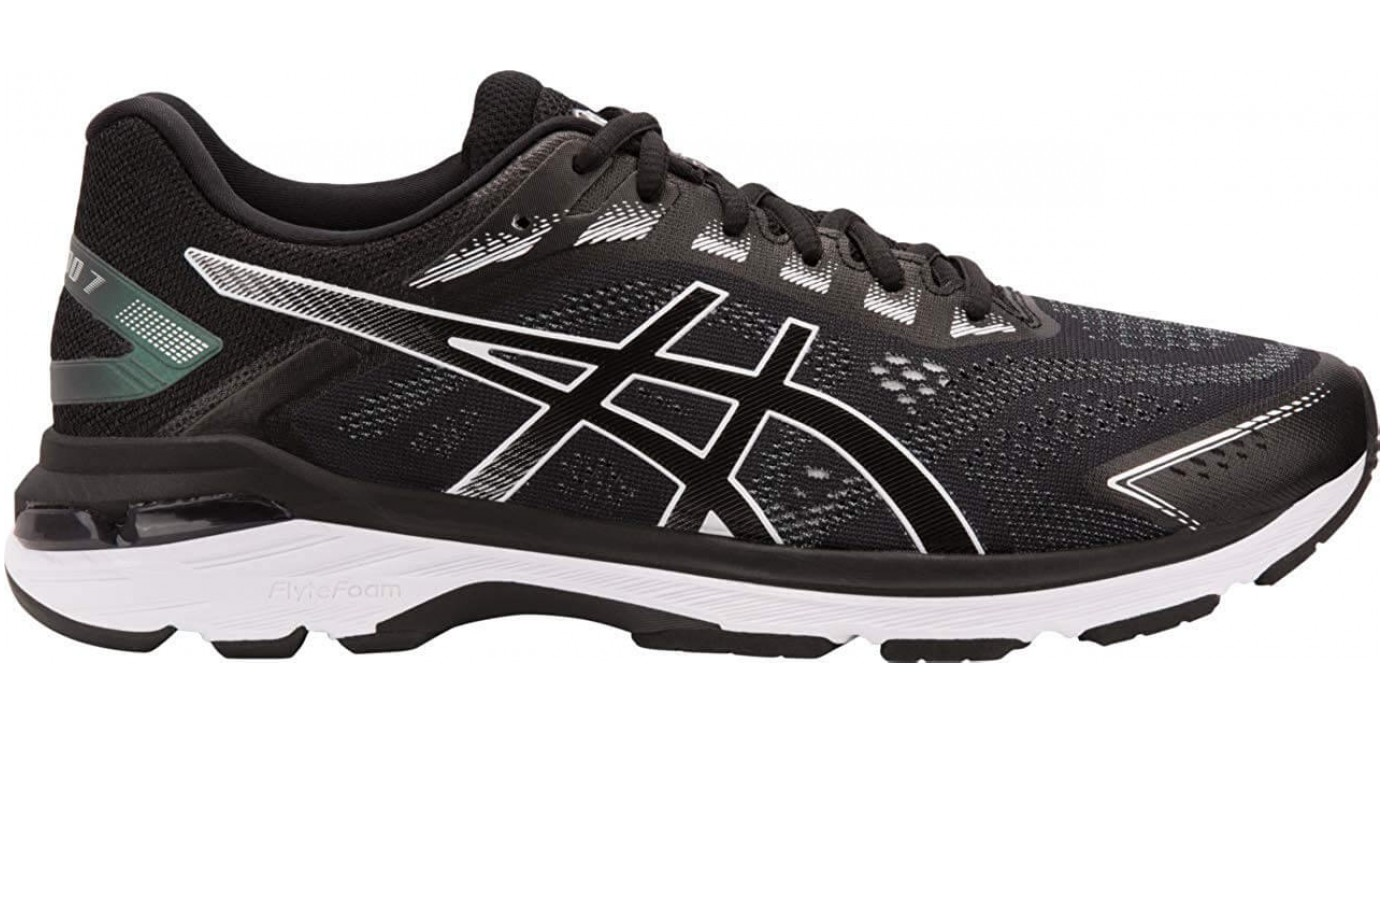 This particular shoe in the ASICS family comes in several widths for the best possible fit no matter your foot shape.